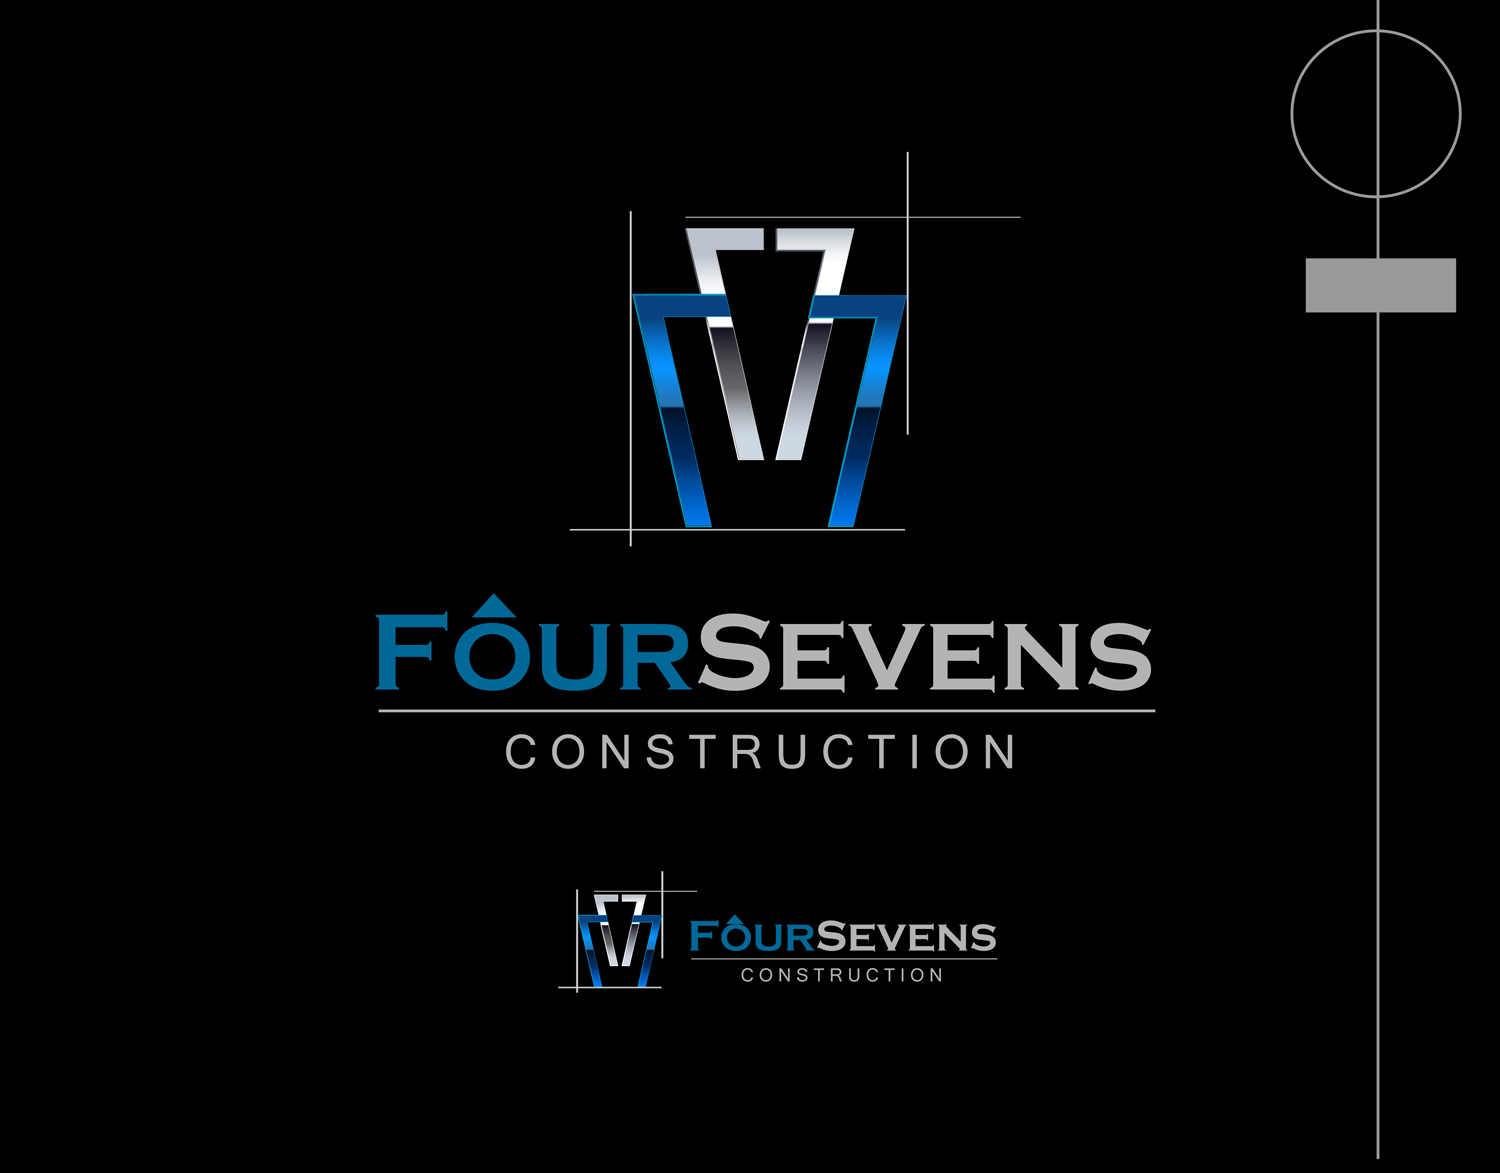 Logo Design by Mark Anthony Moreto Jordan - Entry No. 57 in the Logo Design Contest New Logo Design for foursevens.